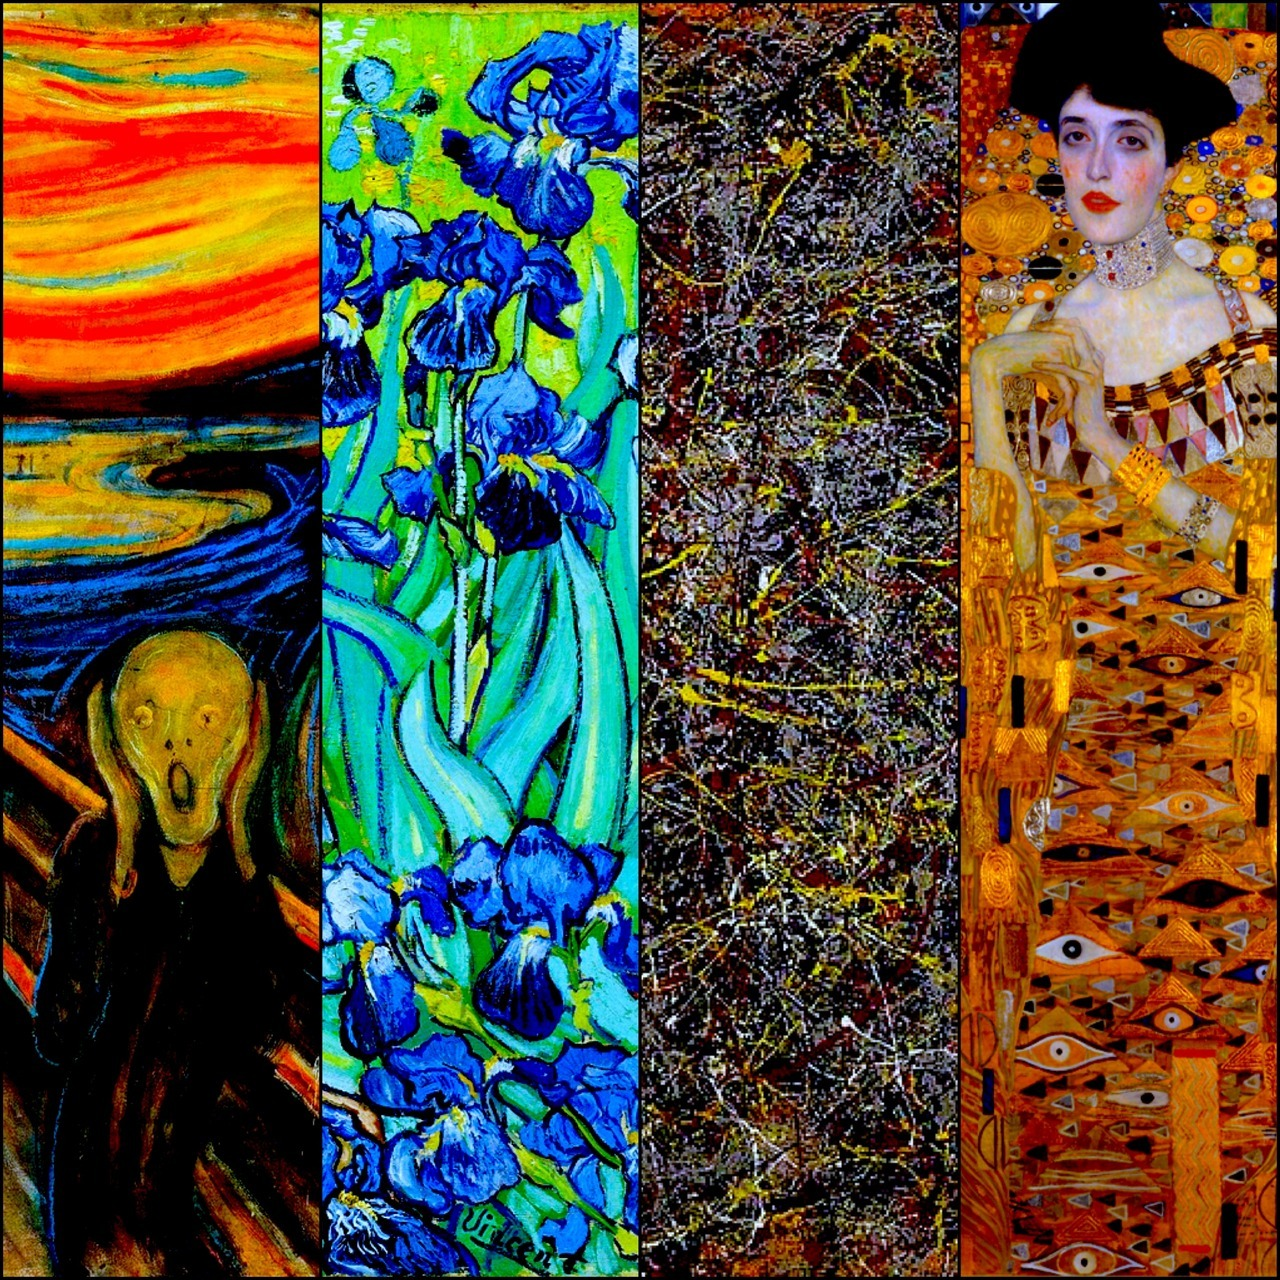 alexeipaedia:  Artsy Pricy in Millions from L to R Sold - Painting : Artist, Year $119.9 - The Scream : Edvard Munch, 1895 $53.9 - Irises : Vincent van Gogh, 1889 $140 - No. 5, 1948 : Jackson Pollock, 1948 $135 - Portrait of Adele Bloch-Bauer I : Gustav Klimt, 1907